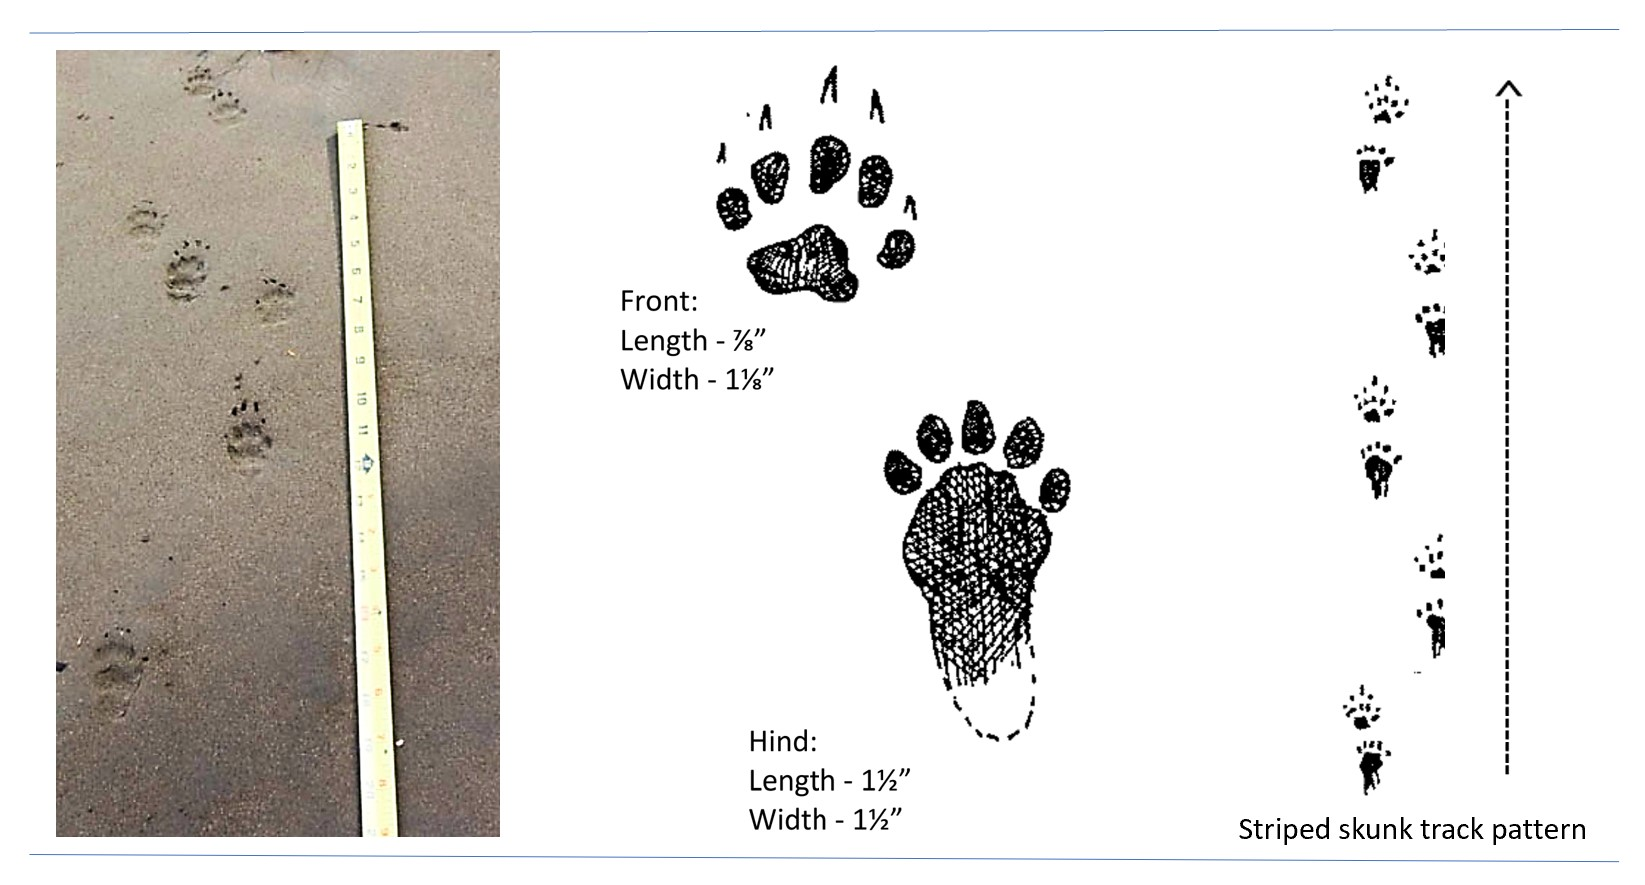 Photo and illustrated tracks of a striped skunk.